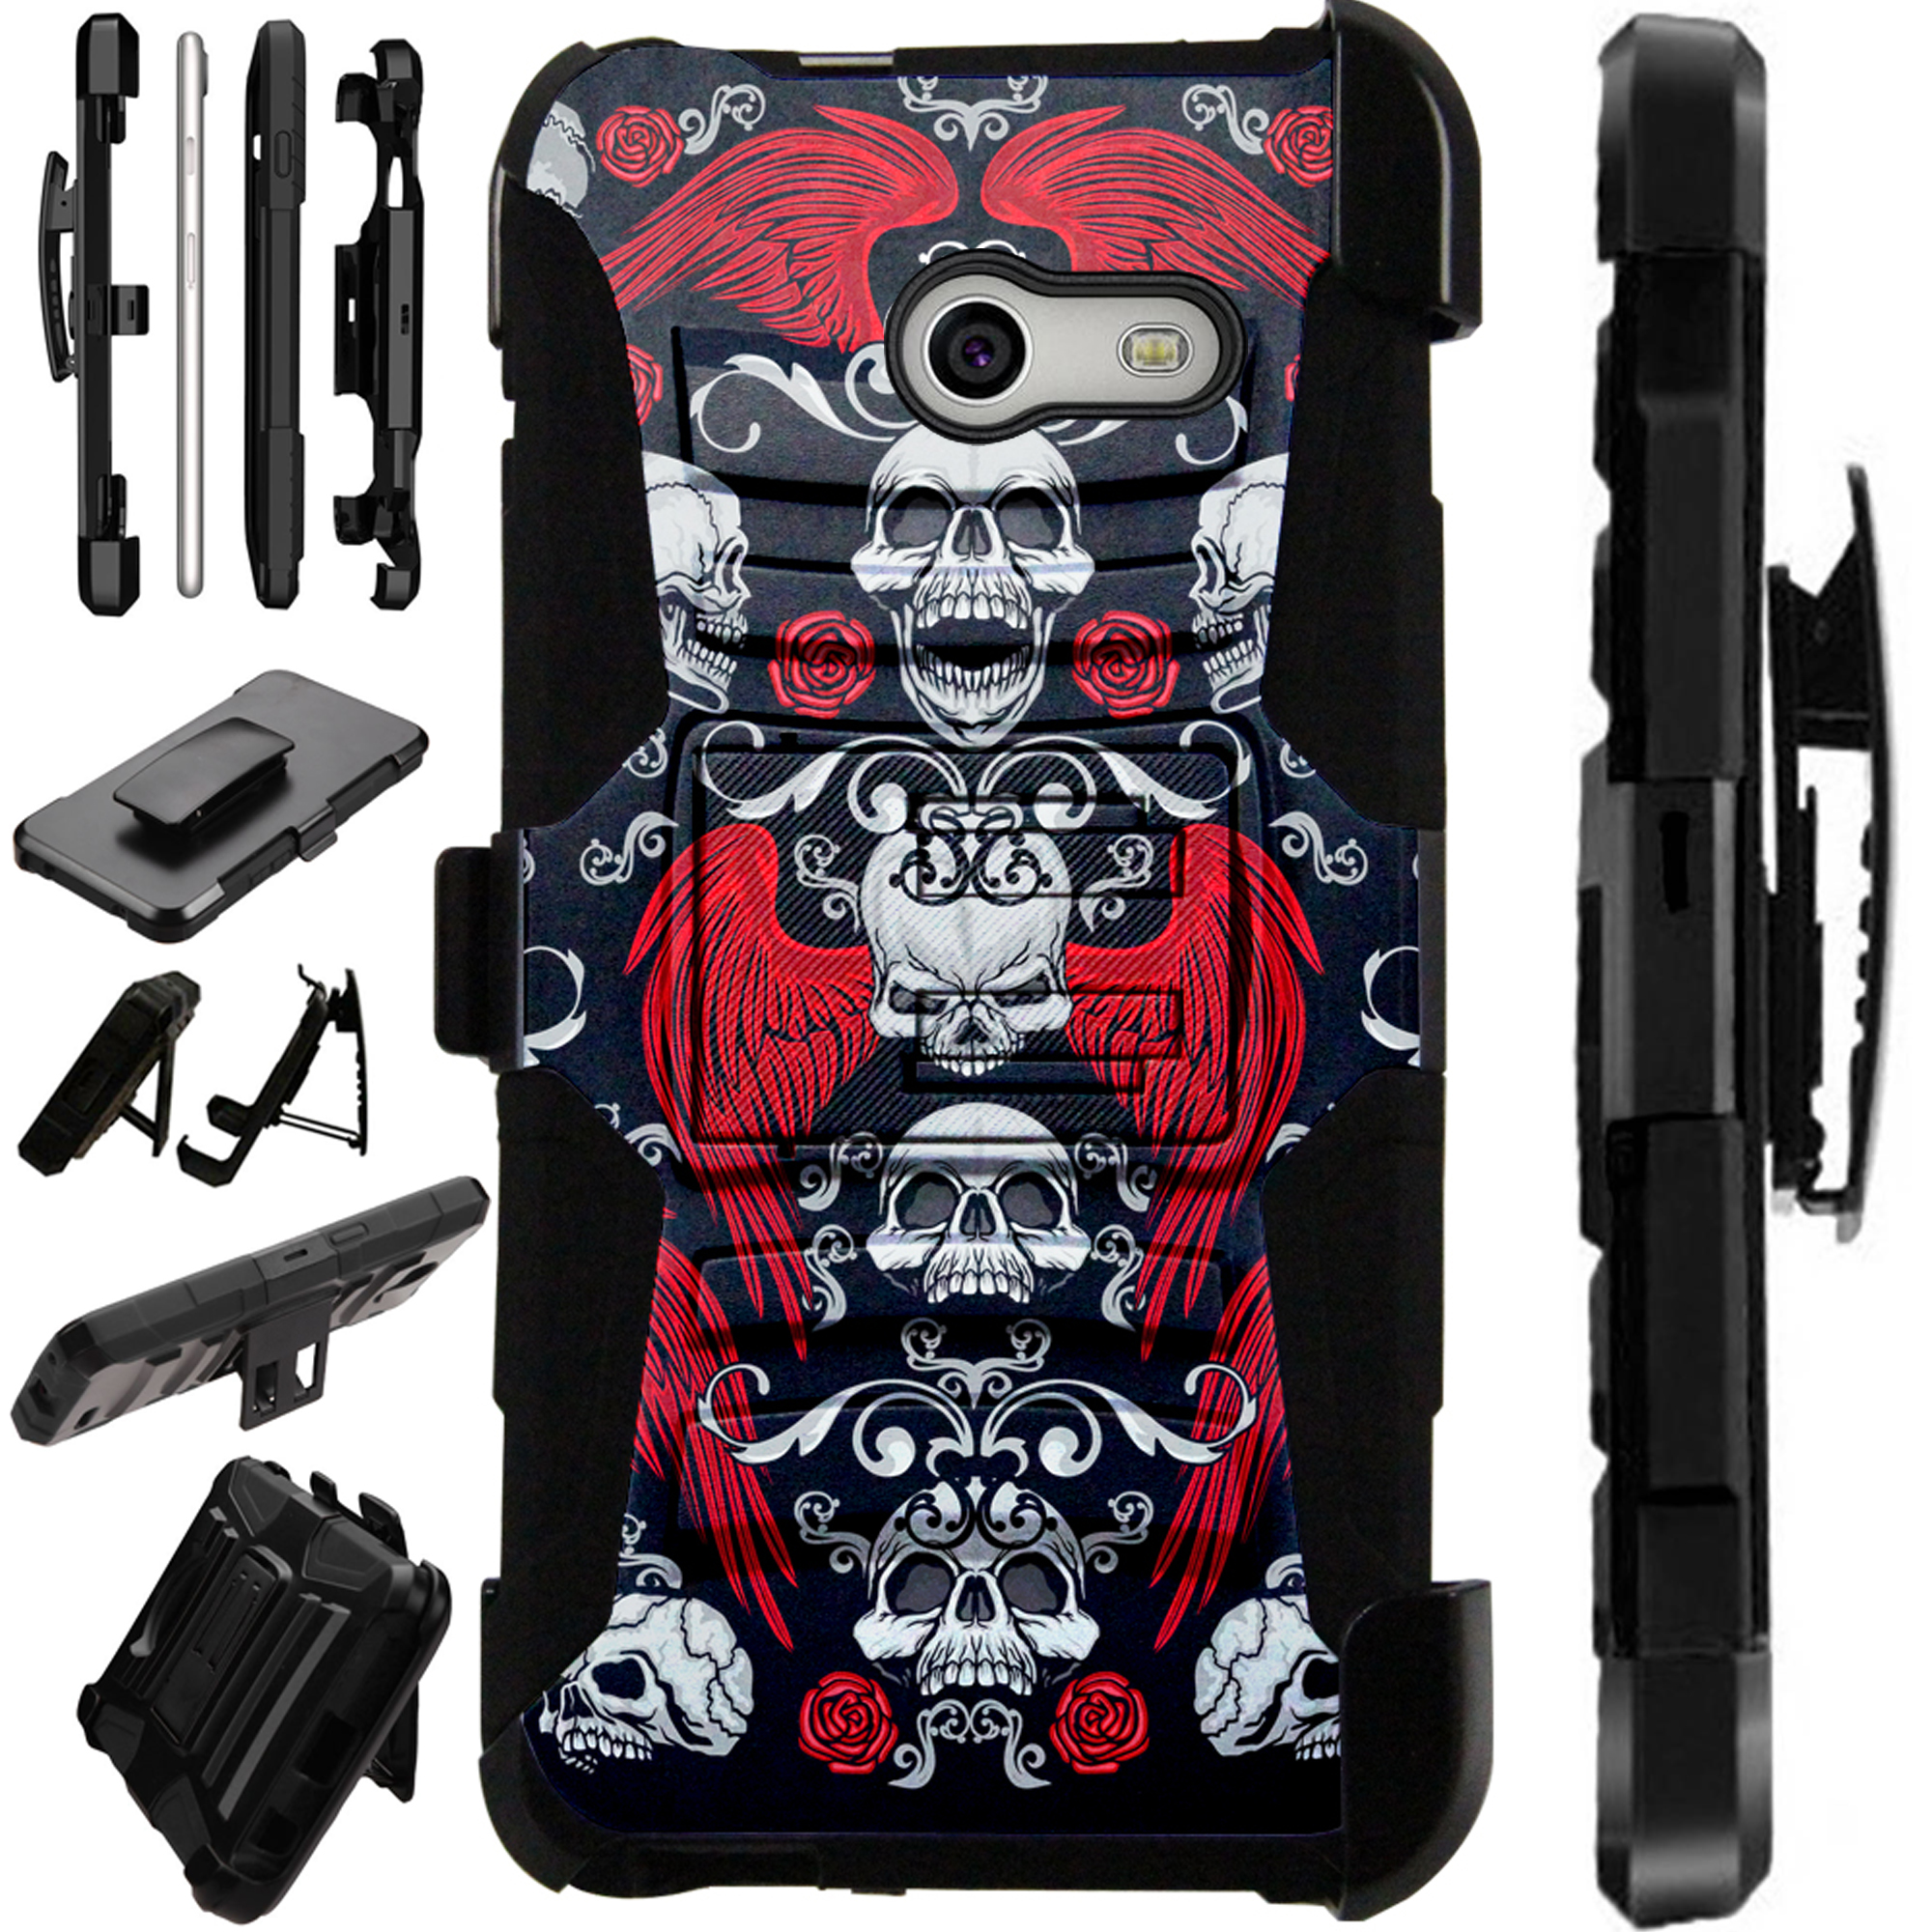 LuxGuard Phone Case Cover For Samsung Galaxy J3 Emerge | J3 Mission | J3 Eclipse | J3 Luna Pro (Skull Angel)